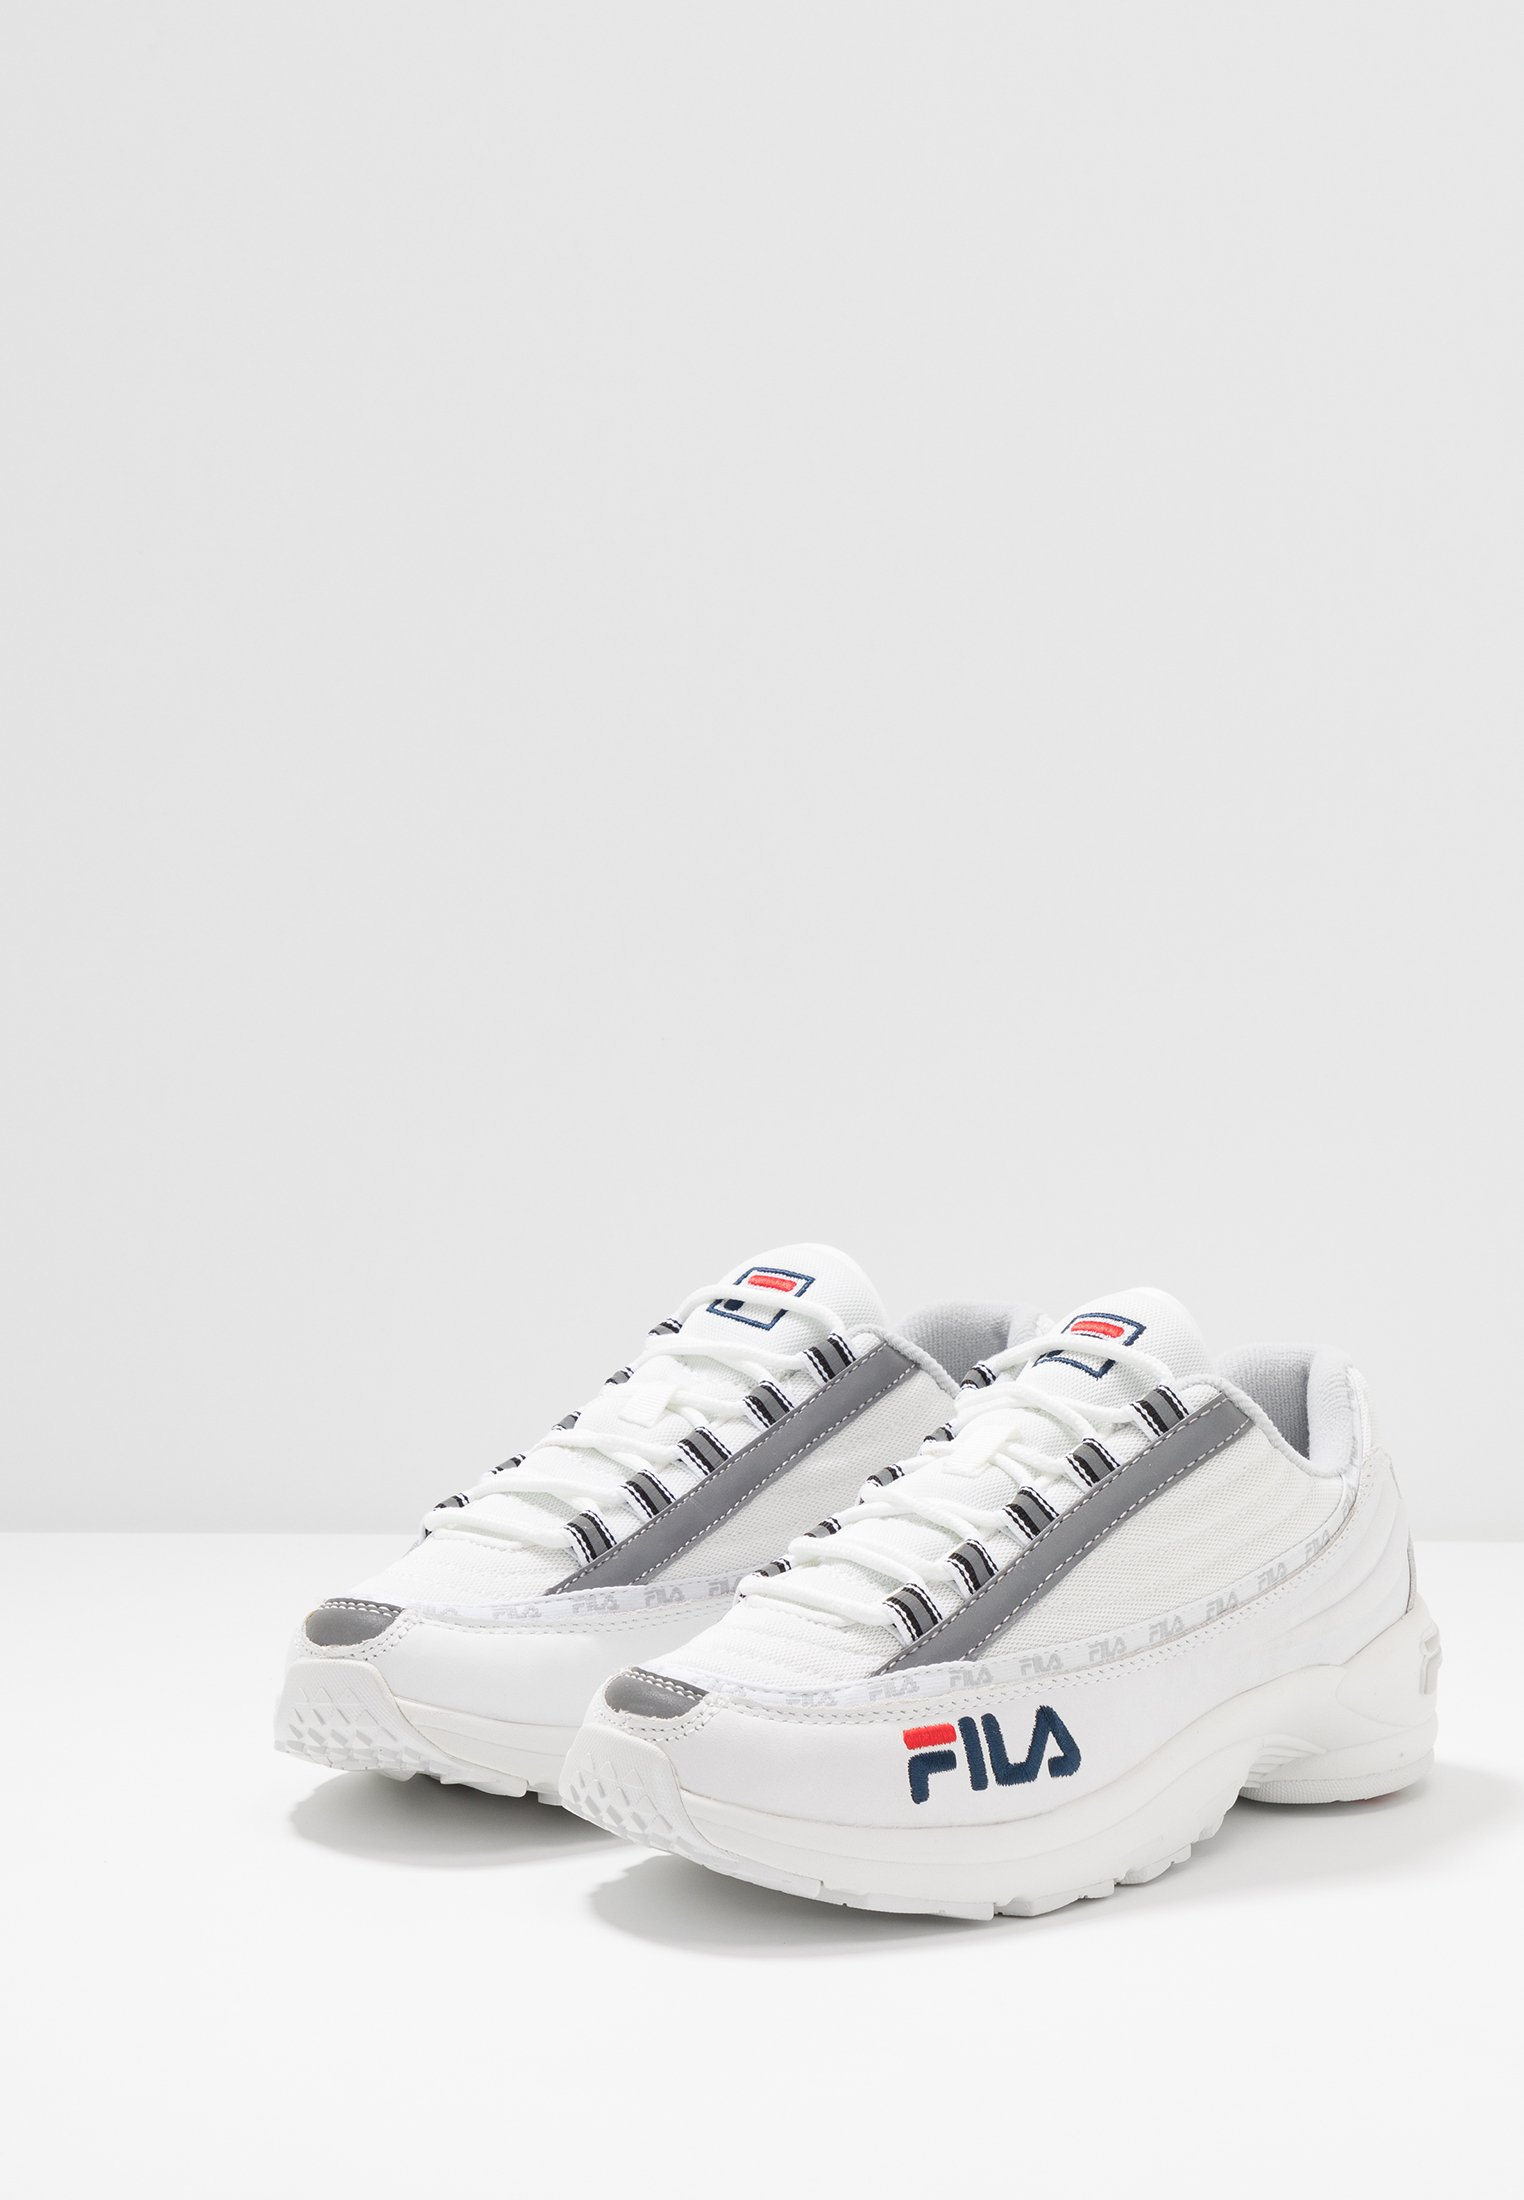 DSTR97Baskets Fila white white DSTR97Baskets basses basses Fila Fila DSTR97Baskets 6gybf7